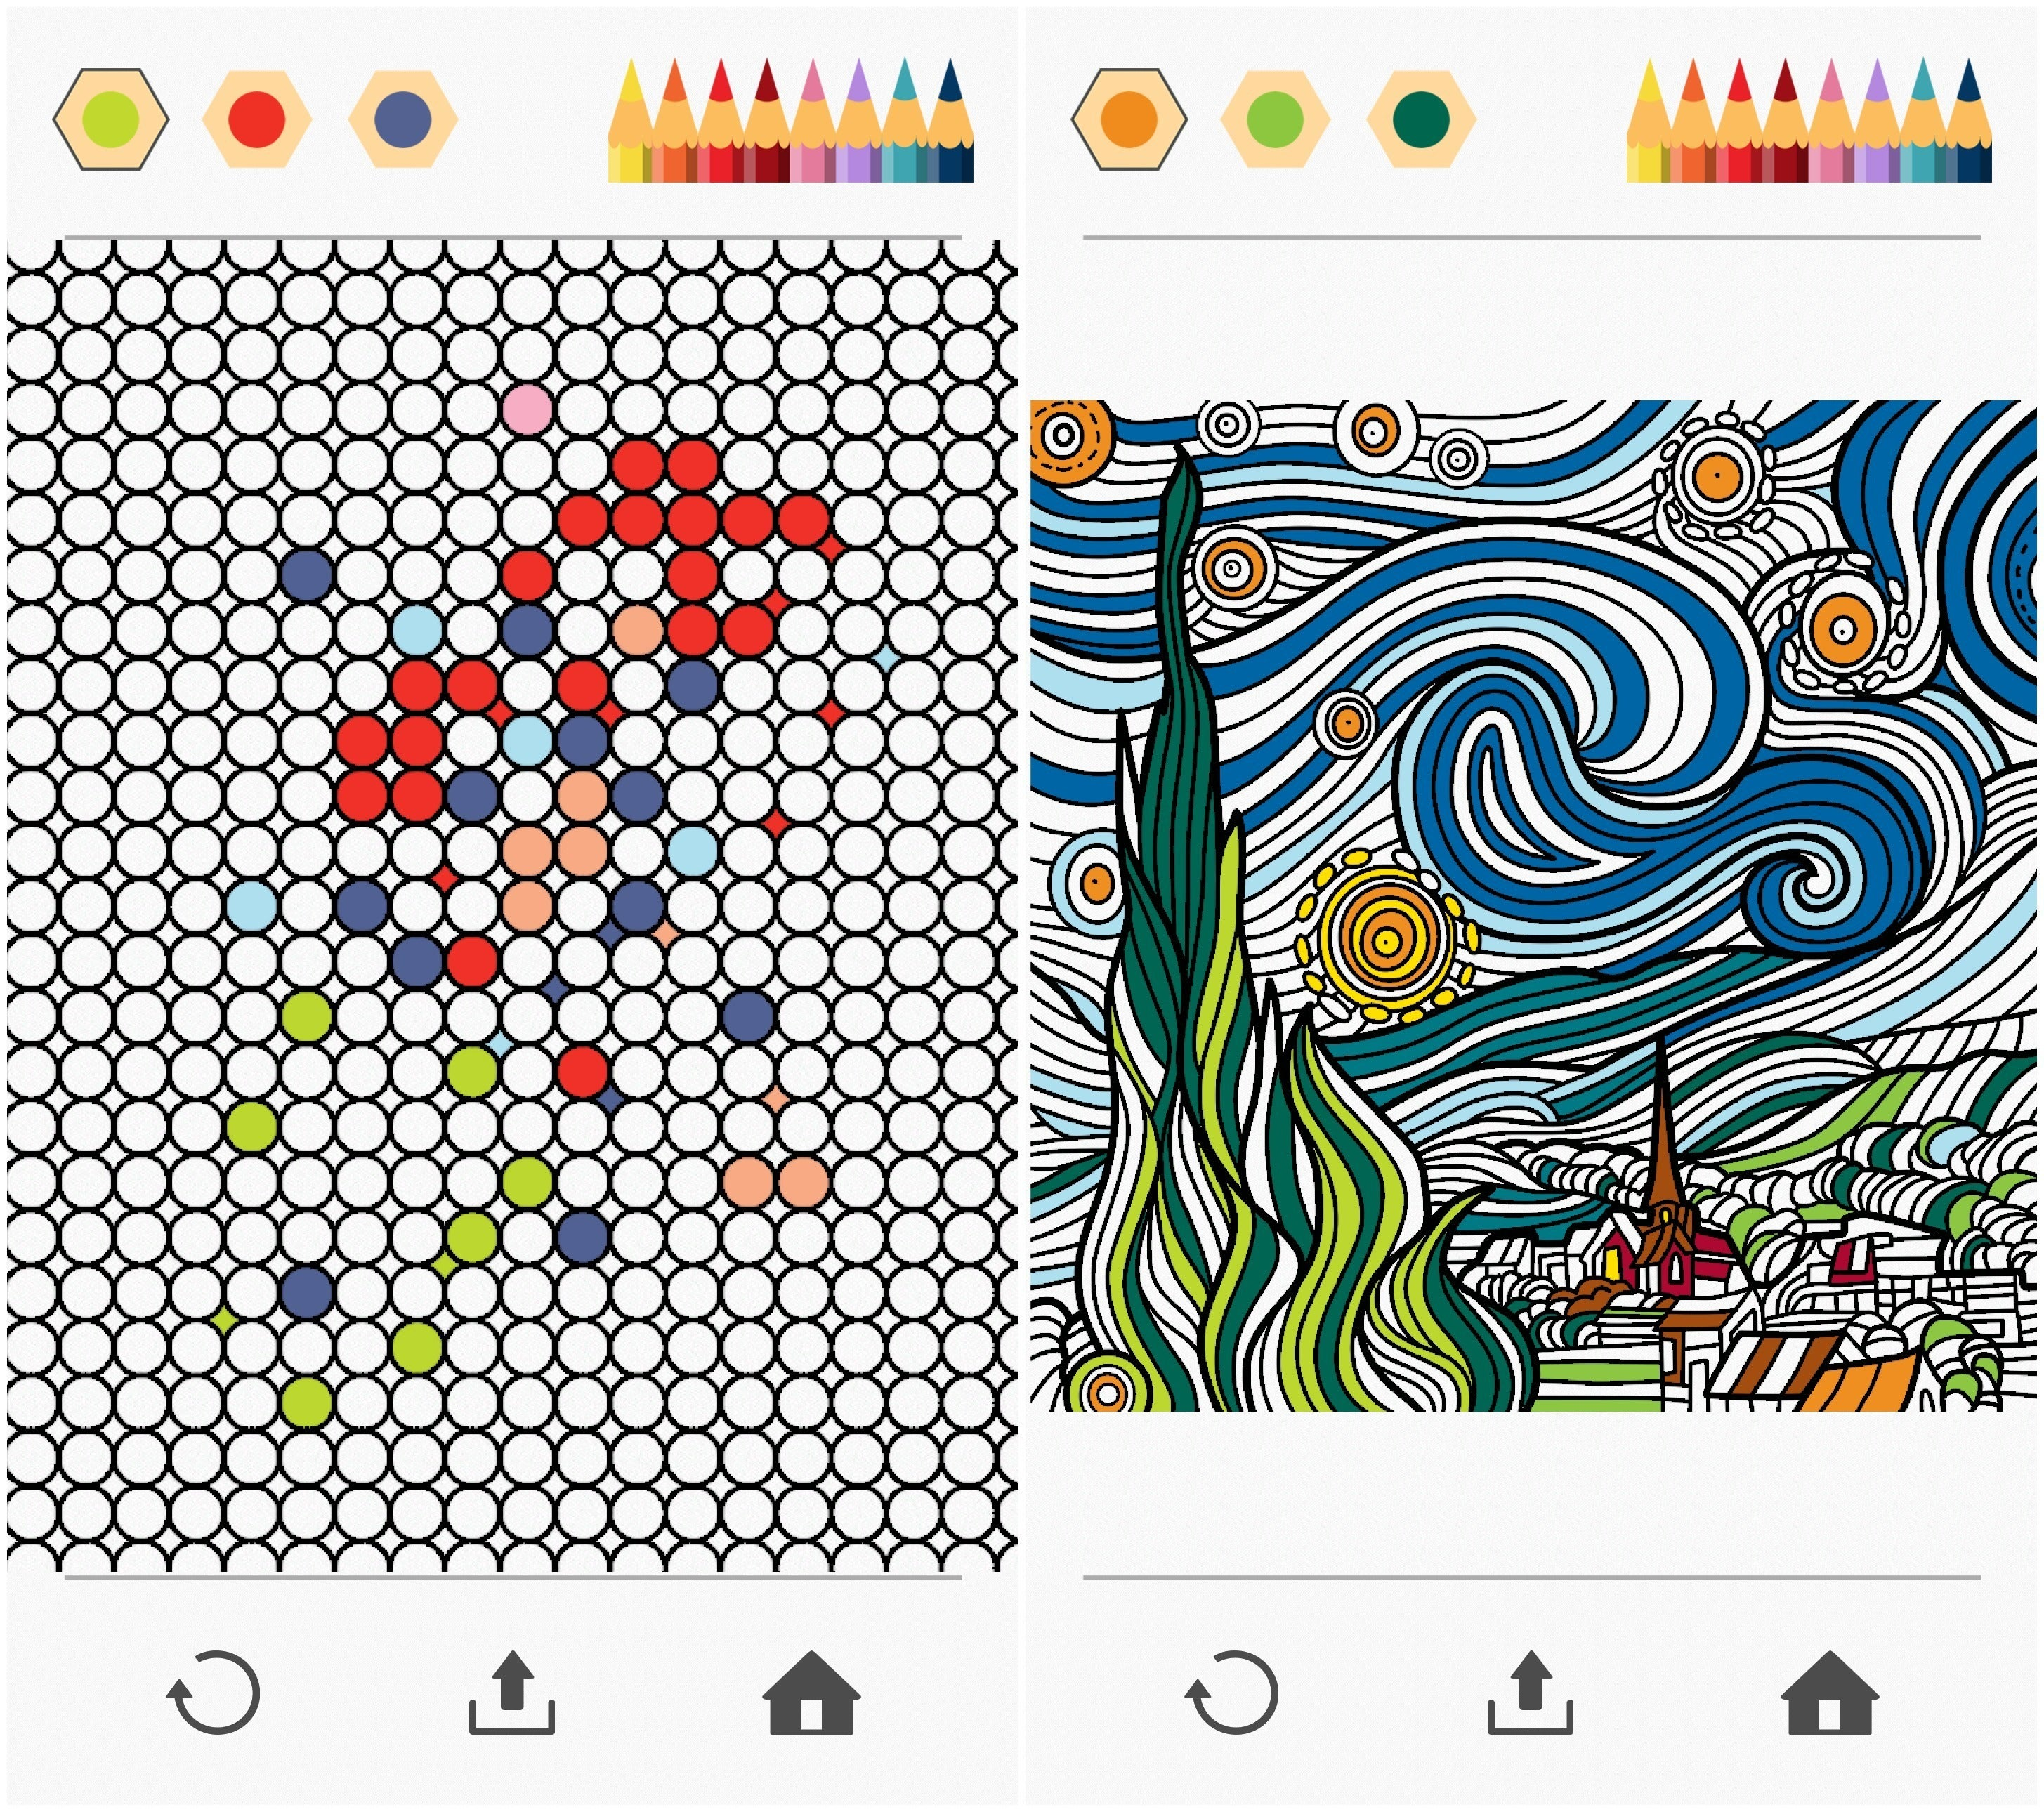 Colorfy plus coloring book - Colorfy Coloring Books For Adults Coloring Book For S Pen